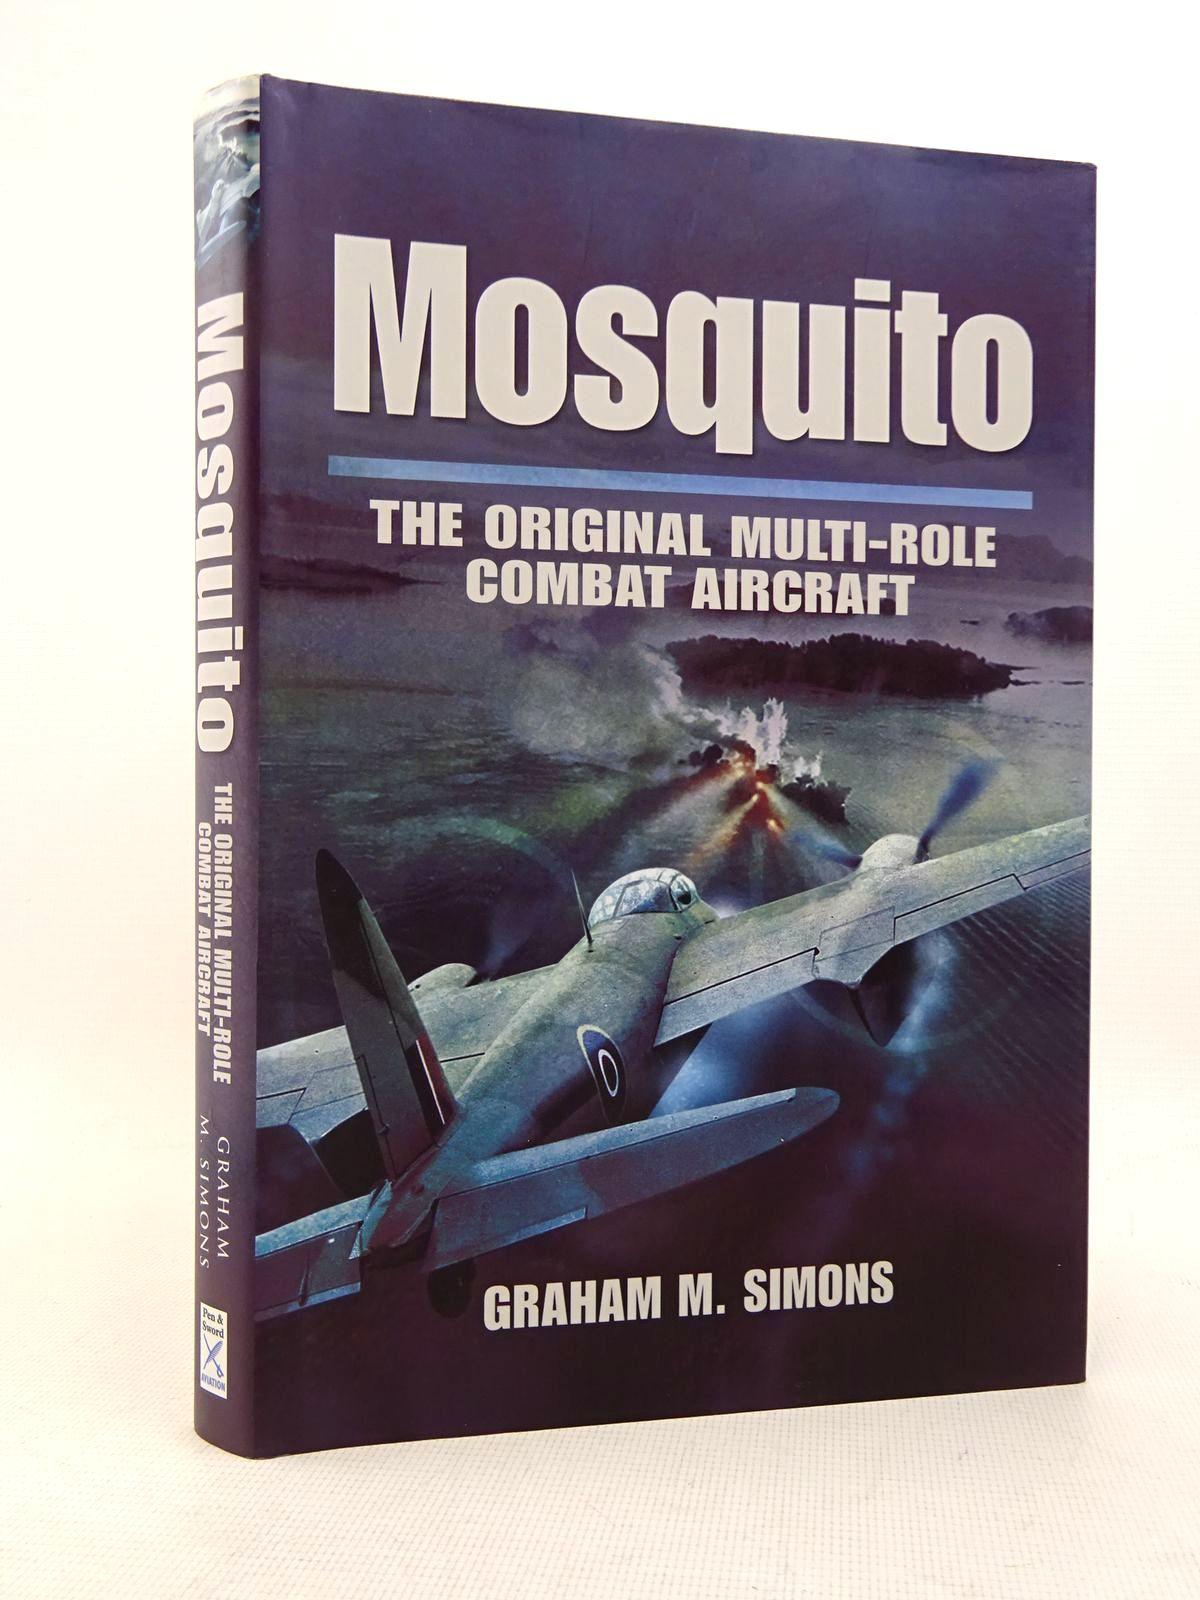 Photo of MOSQUITO THE ORIGINAL MULTI-ROLE COMBAT AIRCRAFT written by Simons, Graham M. published by Pen & Sword Aviation (STOCK CODE: 1817168)  for sale by Stella & Rose's Books